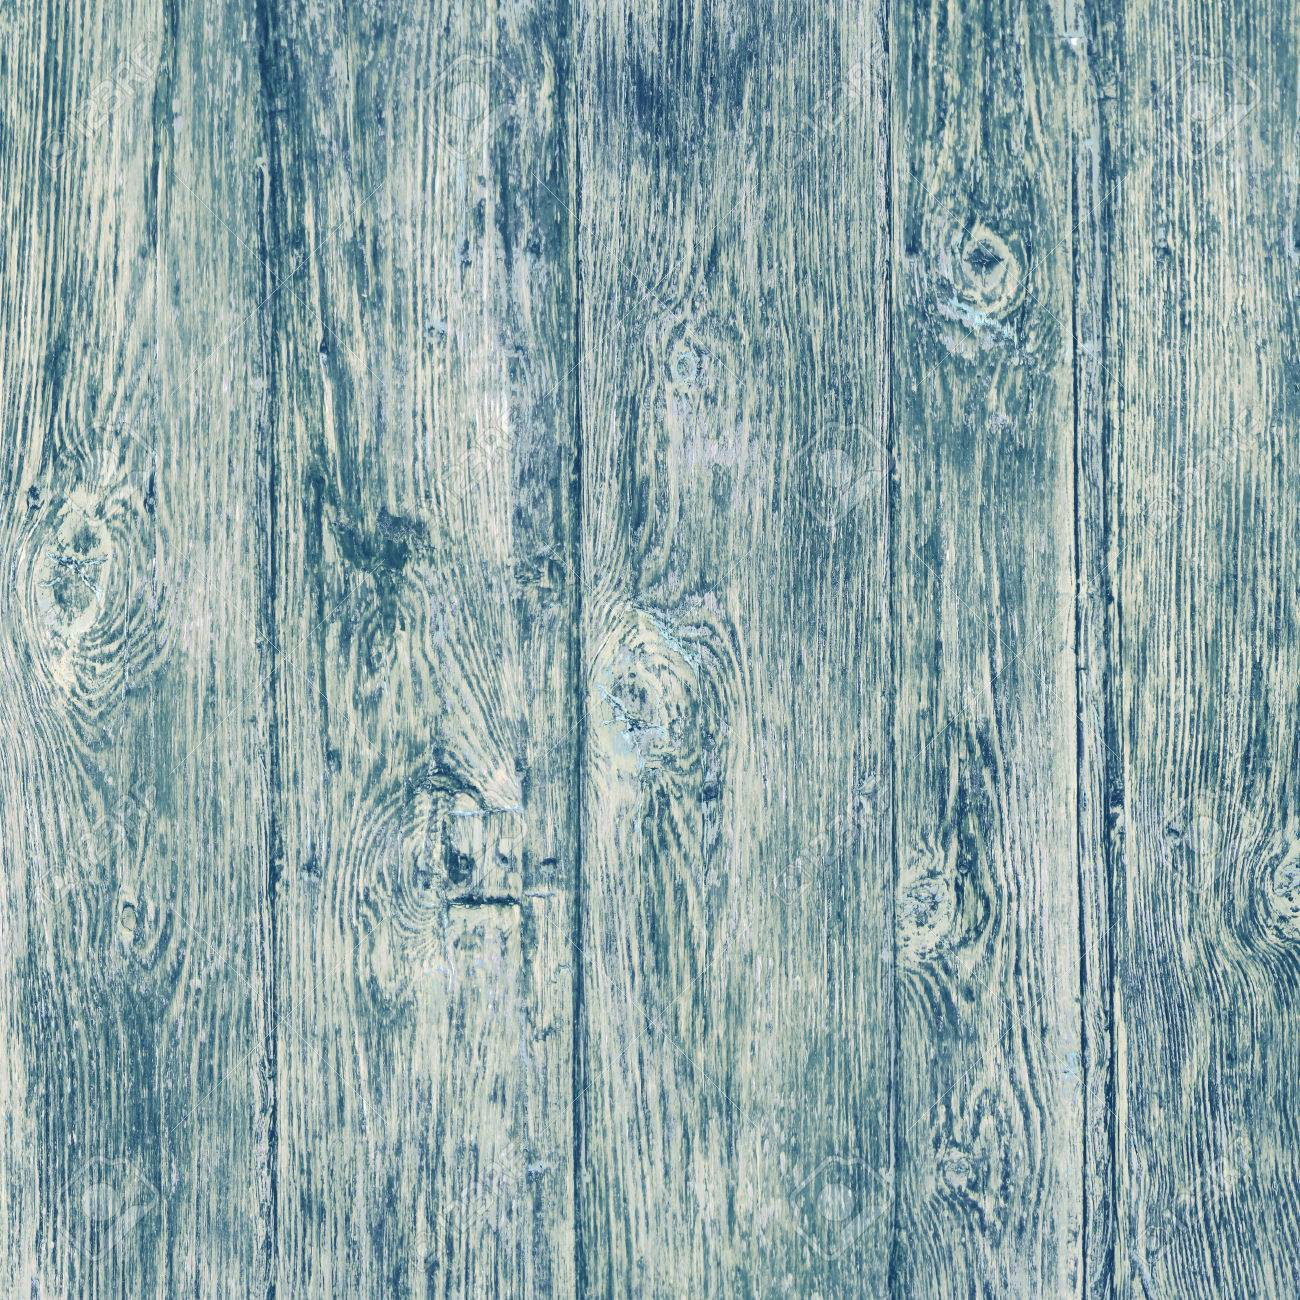 Distressed Wood Texture, Blue Wooden Planks Background Stock Photo ...